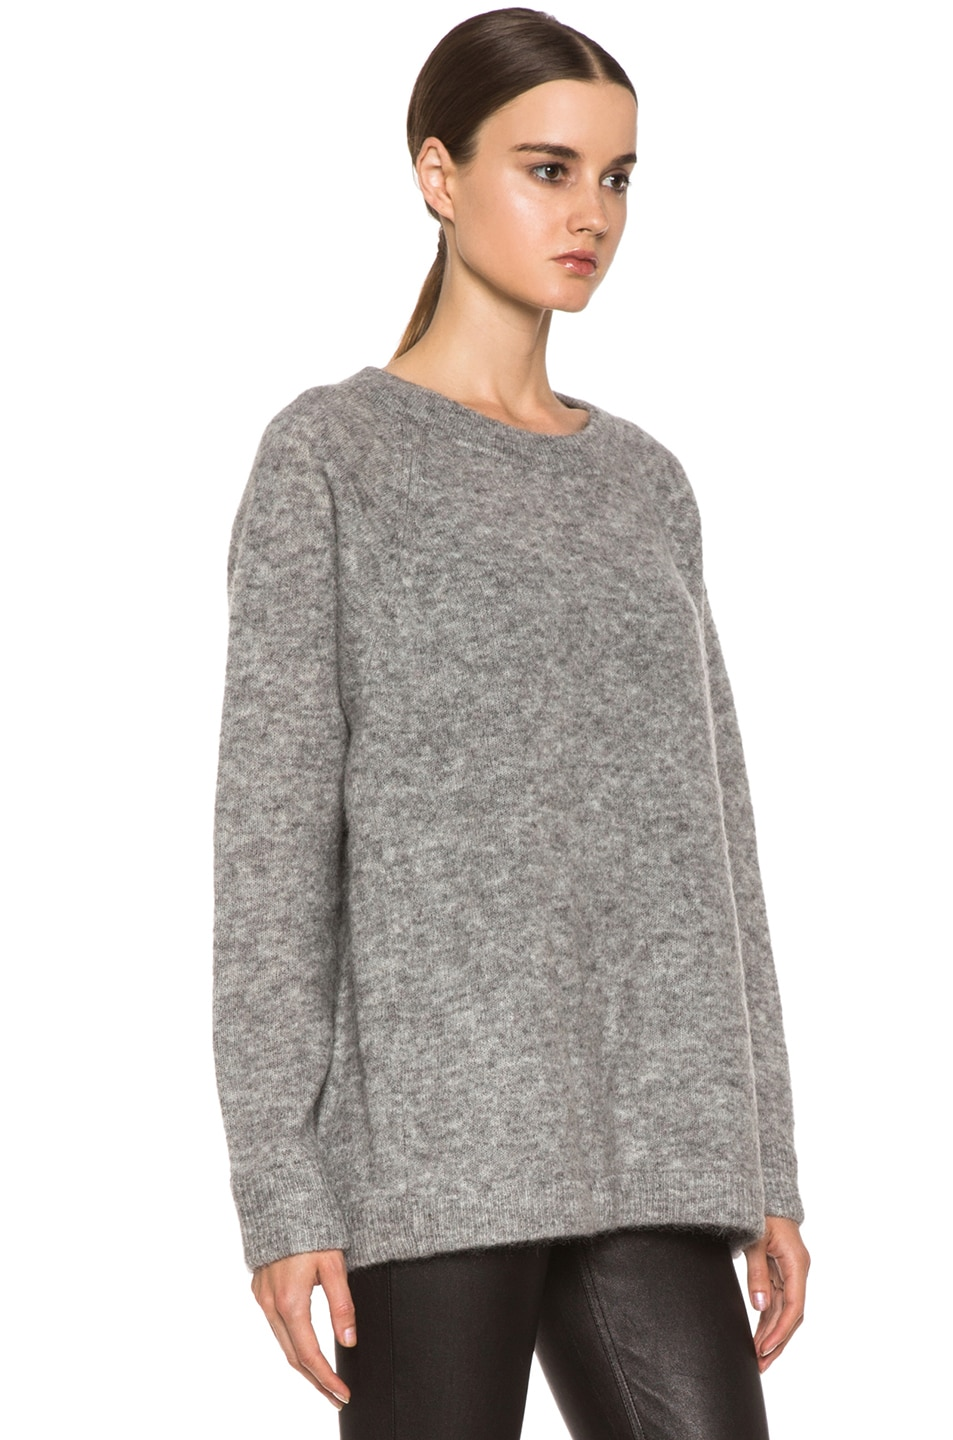 66106c8273c6e Image 3 of Acne Studios Rue Mohair-Blend Sweater in Grey Melanage